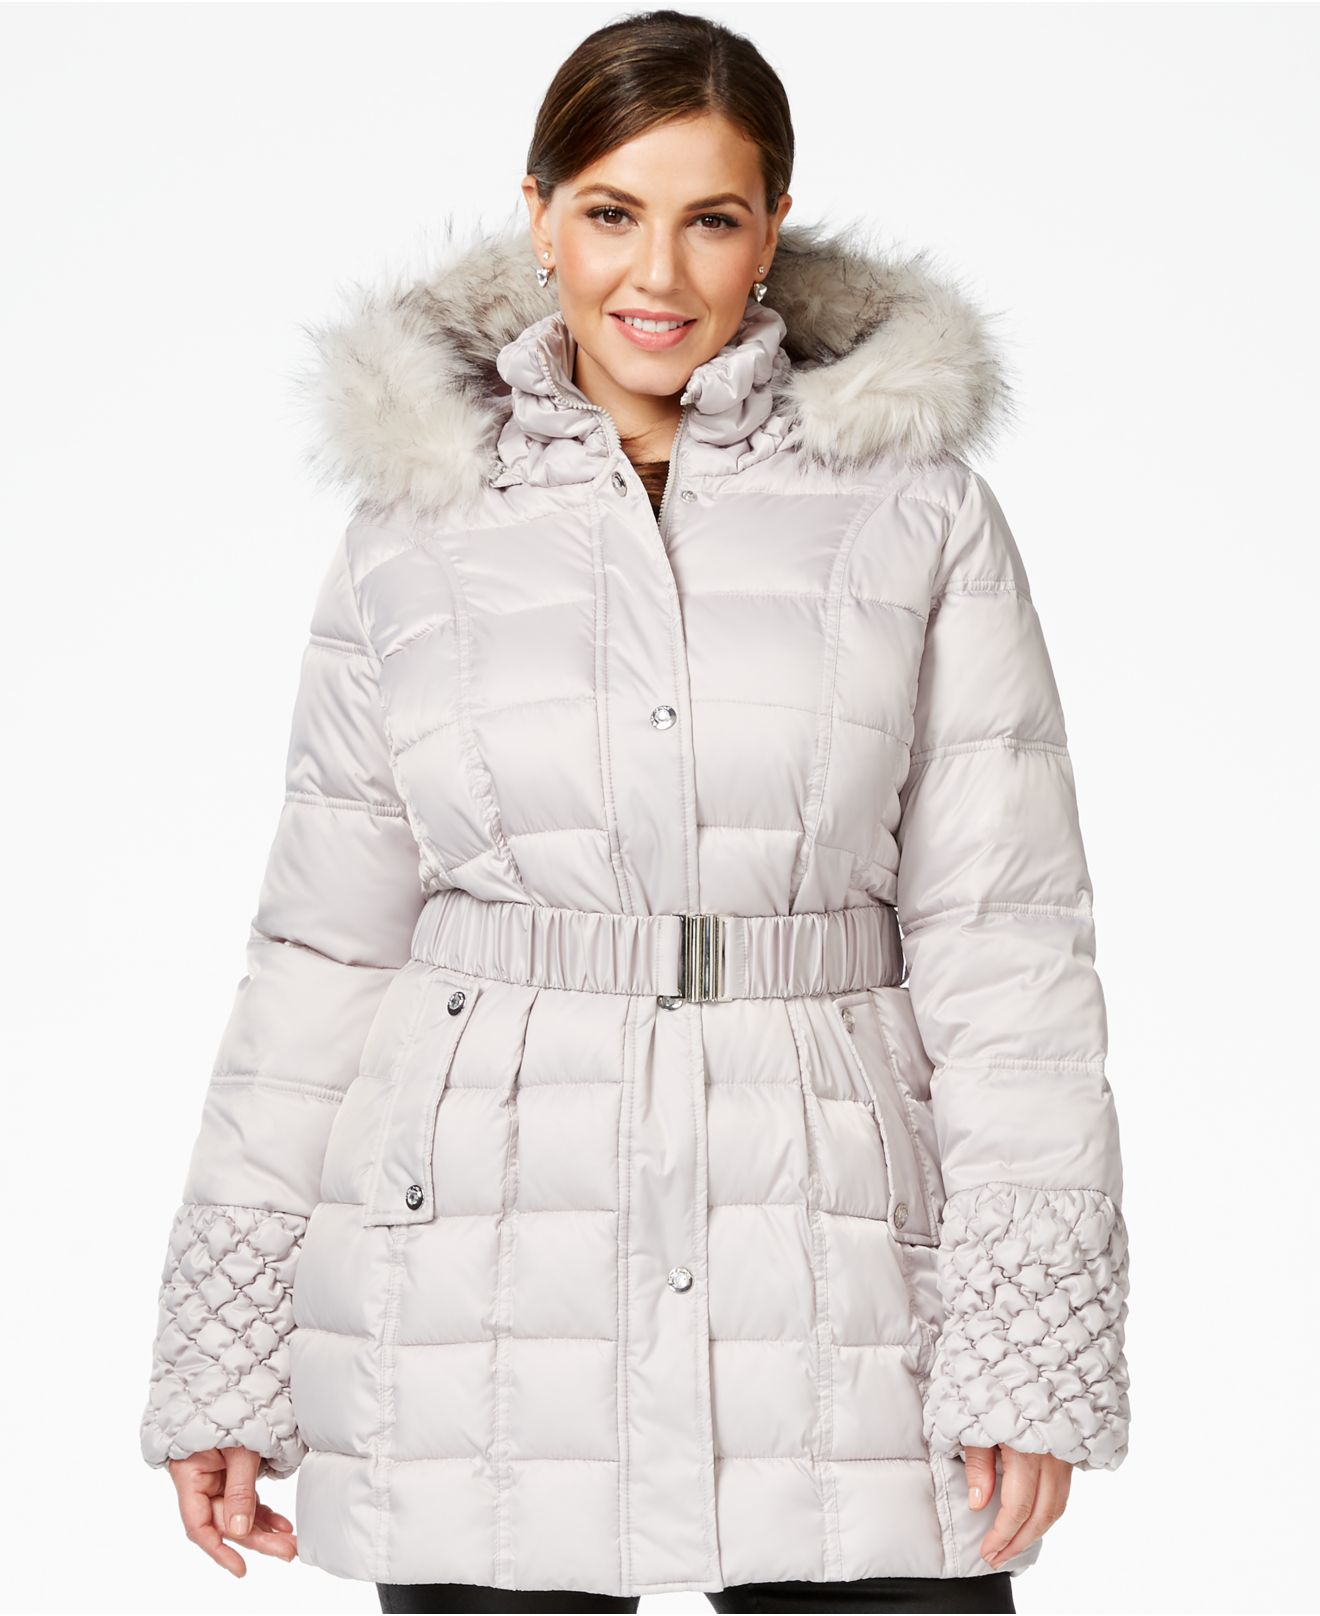 Betsey johnson Plus Faux-fur-trim Quilted Belted Puffer Coat in ... : quilted belted coat - Adamdwight.com